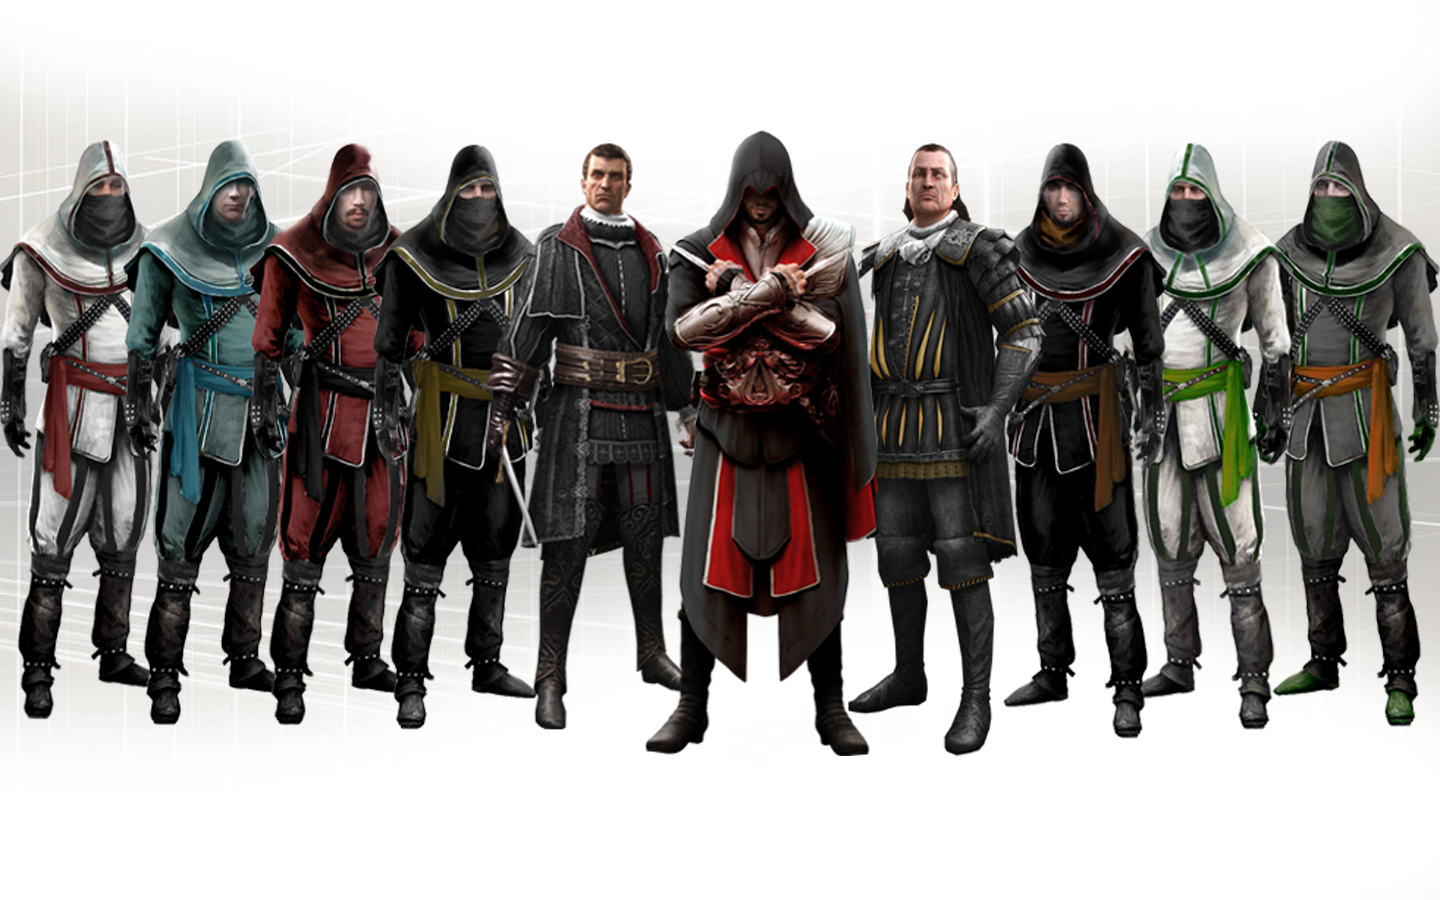 Assassins Creed All Assassins Png Free Assassins Creed All